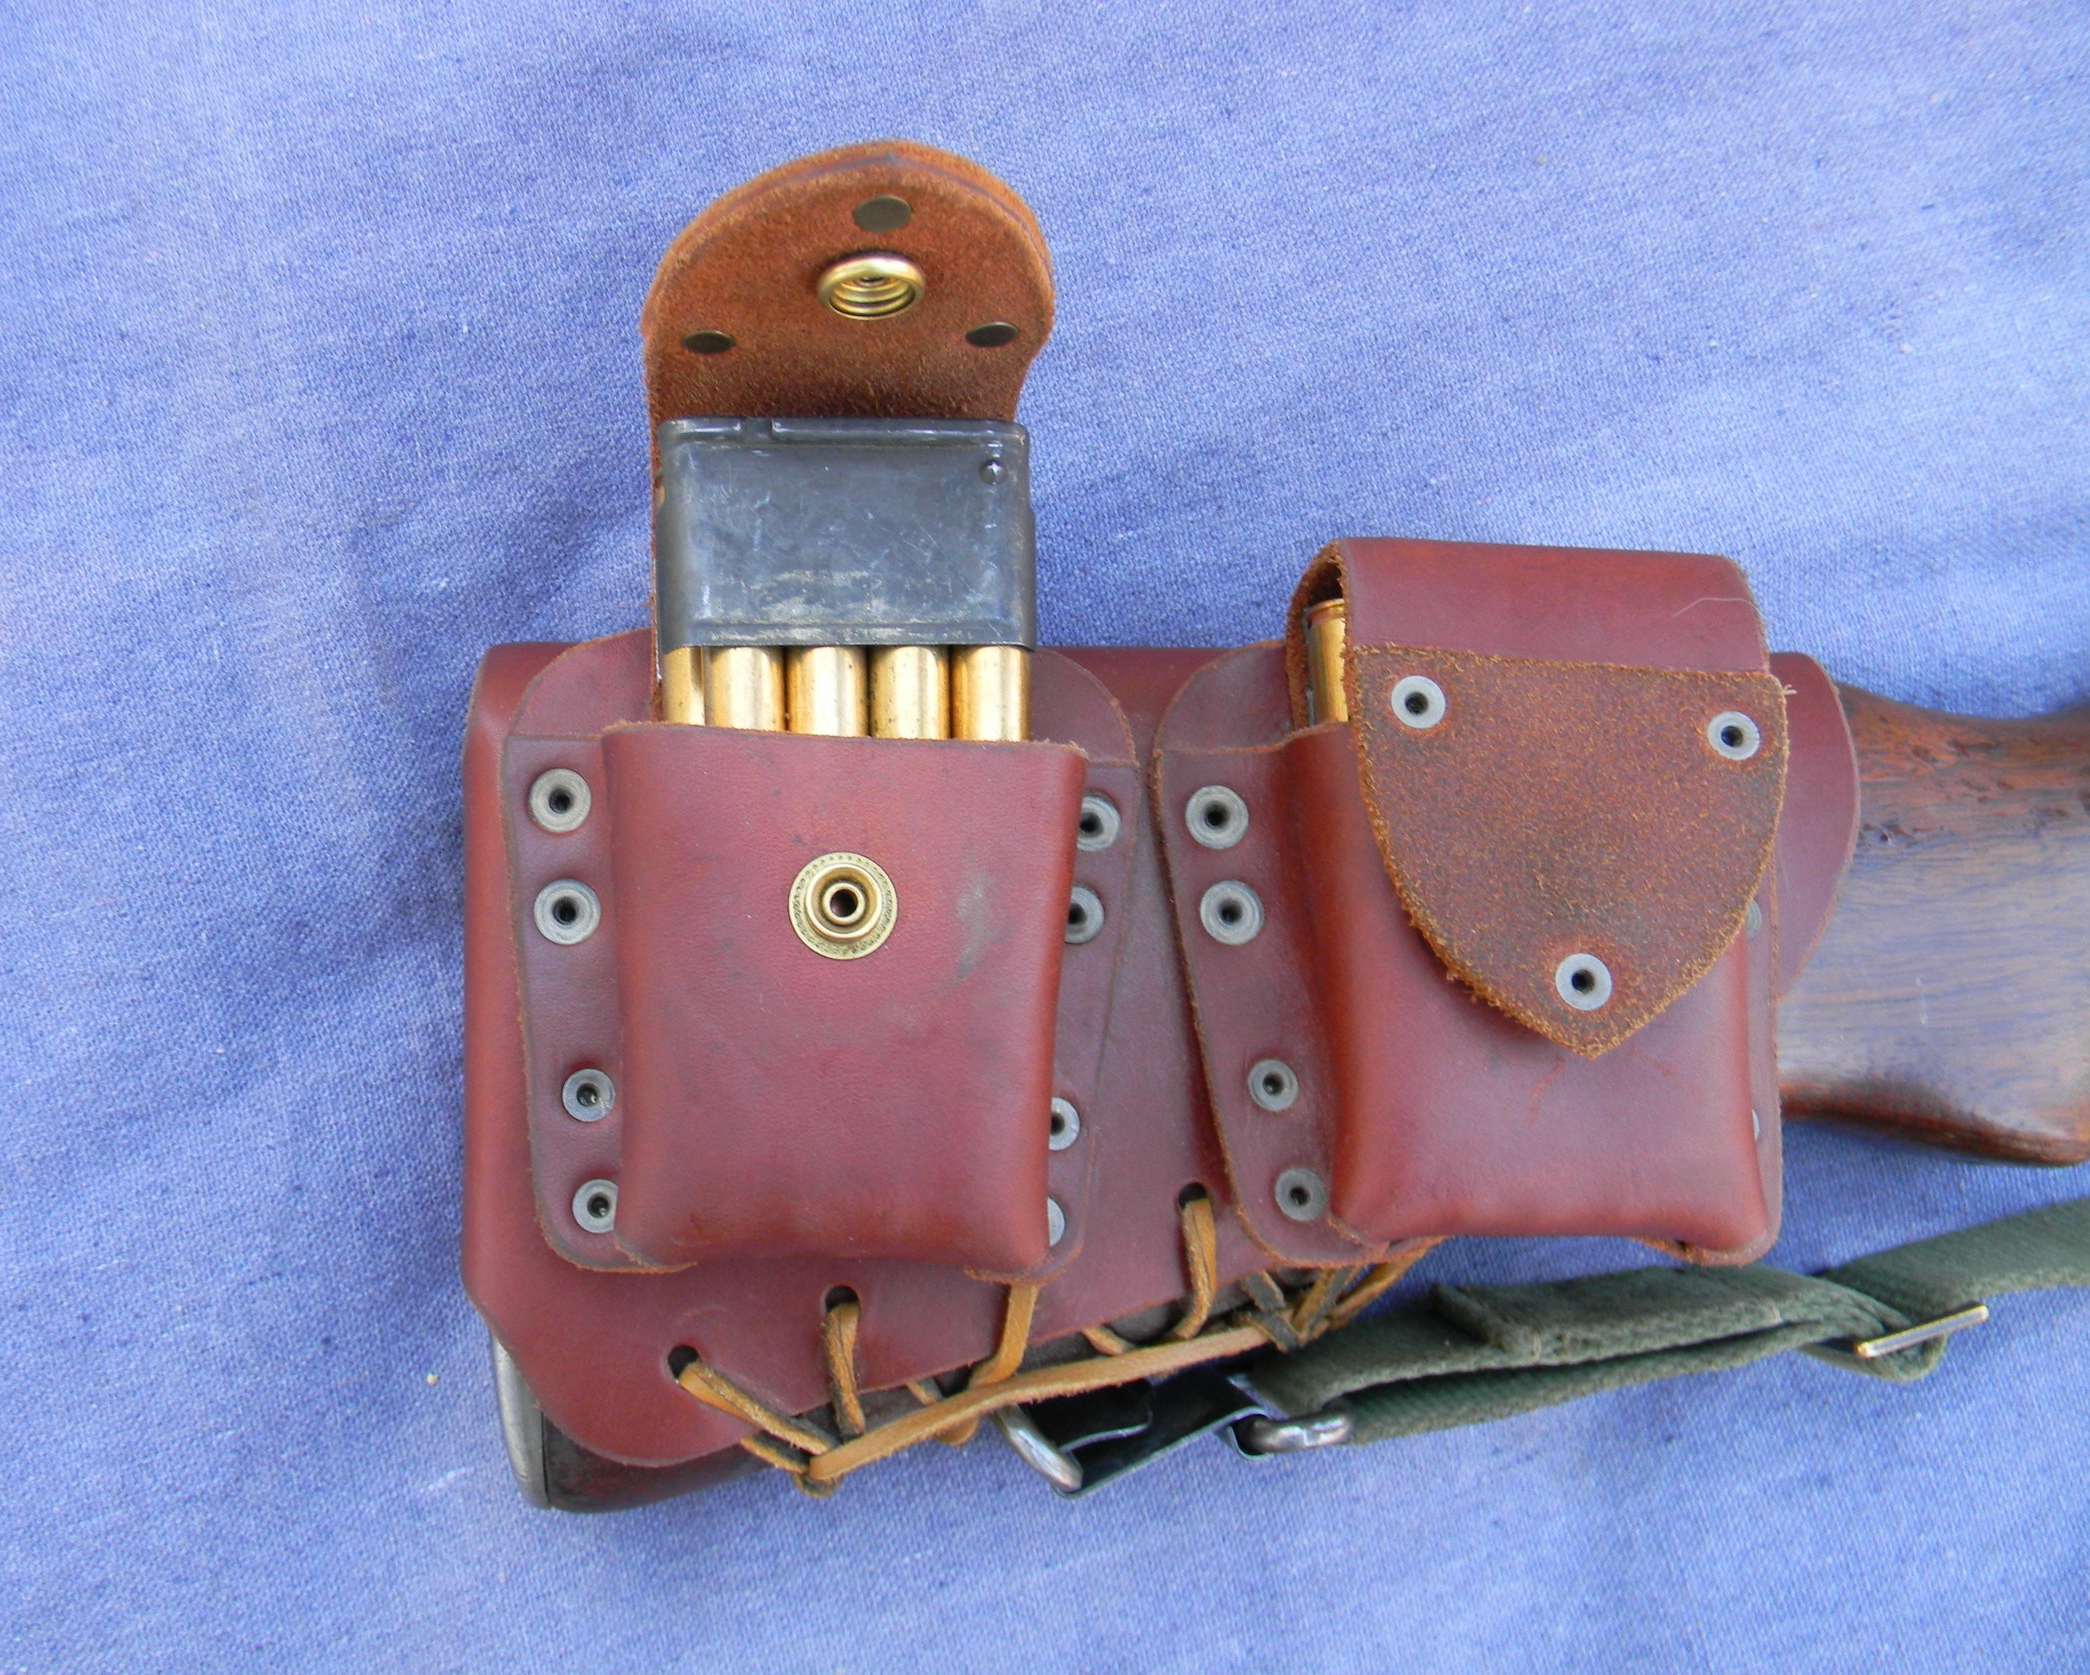 Profiled Pouches - The Stock Pocket pouches are fitted to the loaded Enblock clip and secured with round pointed leather covered snap flaps. Enblocks easily drop into place and pouches are low cut to give a good grab on the clips, for quick reloading.The doubled leather ends are stiff and easy to open and close, securing each clip in its pouch.